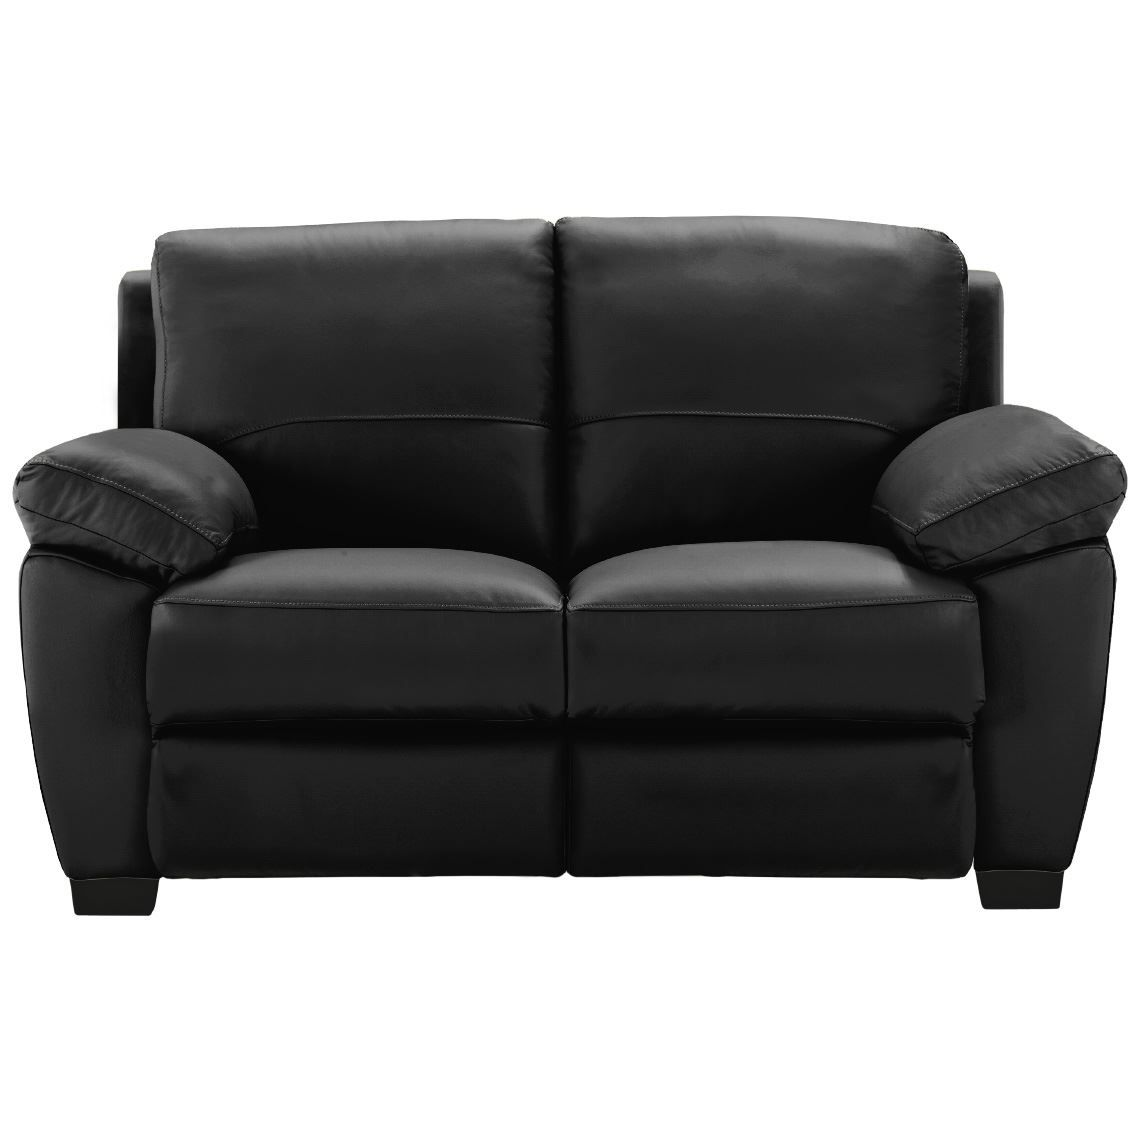 Pleasing Lucas Recliner 2 Seat Leather Electric Recliner Sofa In 2019 Gamerscity Chair Design For Home Gamerscityorg